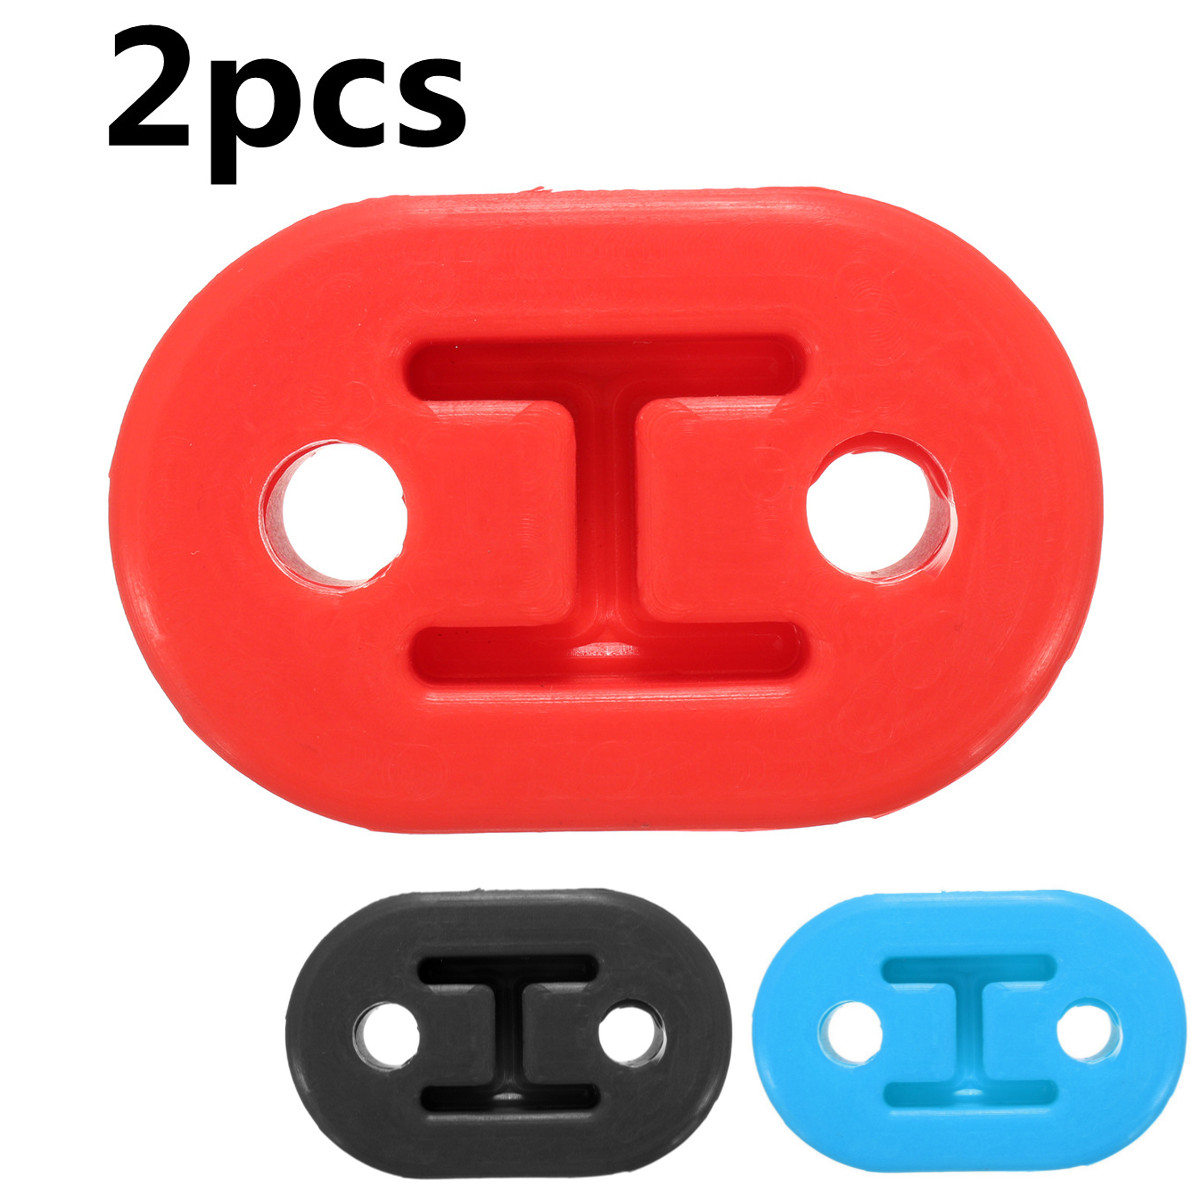 2pcs 2 Holes Diameter 11mm Universal Car Rubber Exhaust Tail Pipe Mount Brackets Hanger Insulator